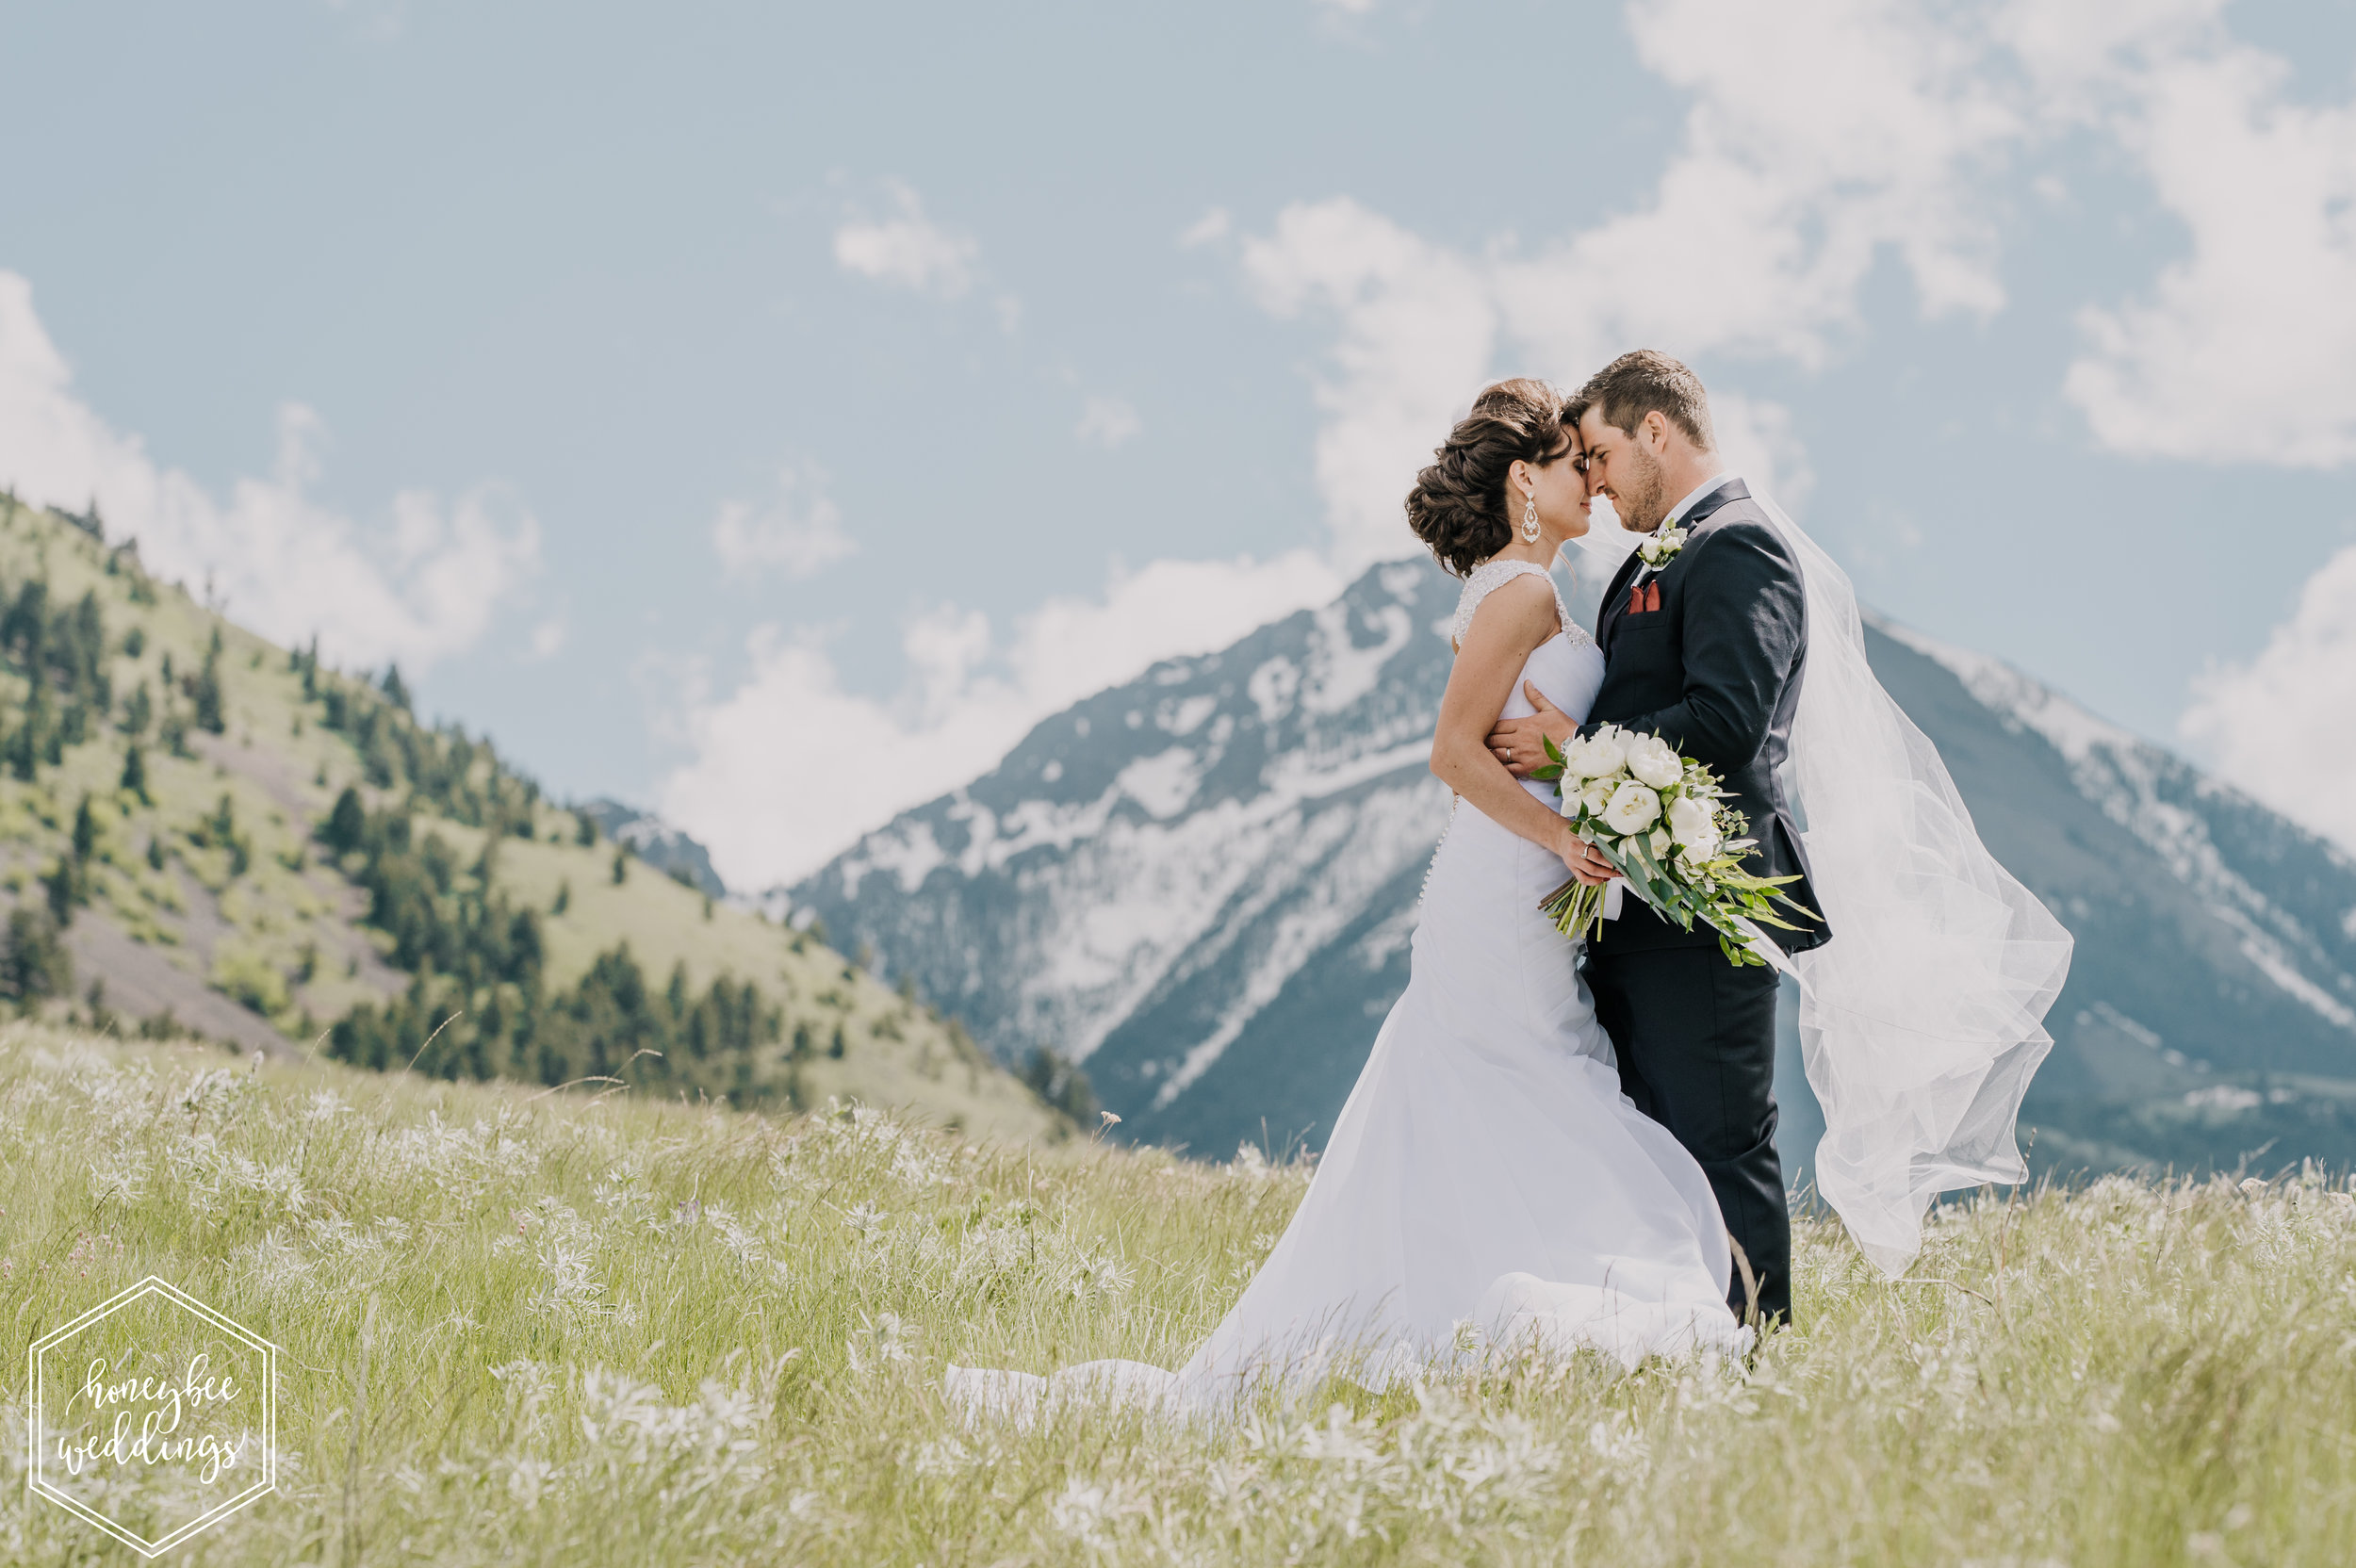 80 Chico Hotsprings Wedding_Bowdino 2018-3116.jpg